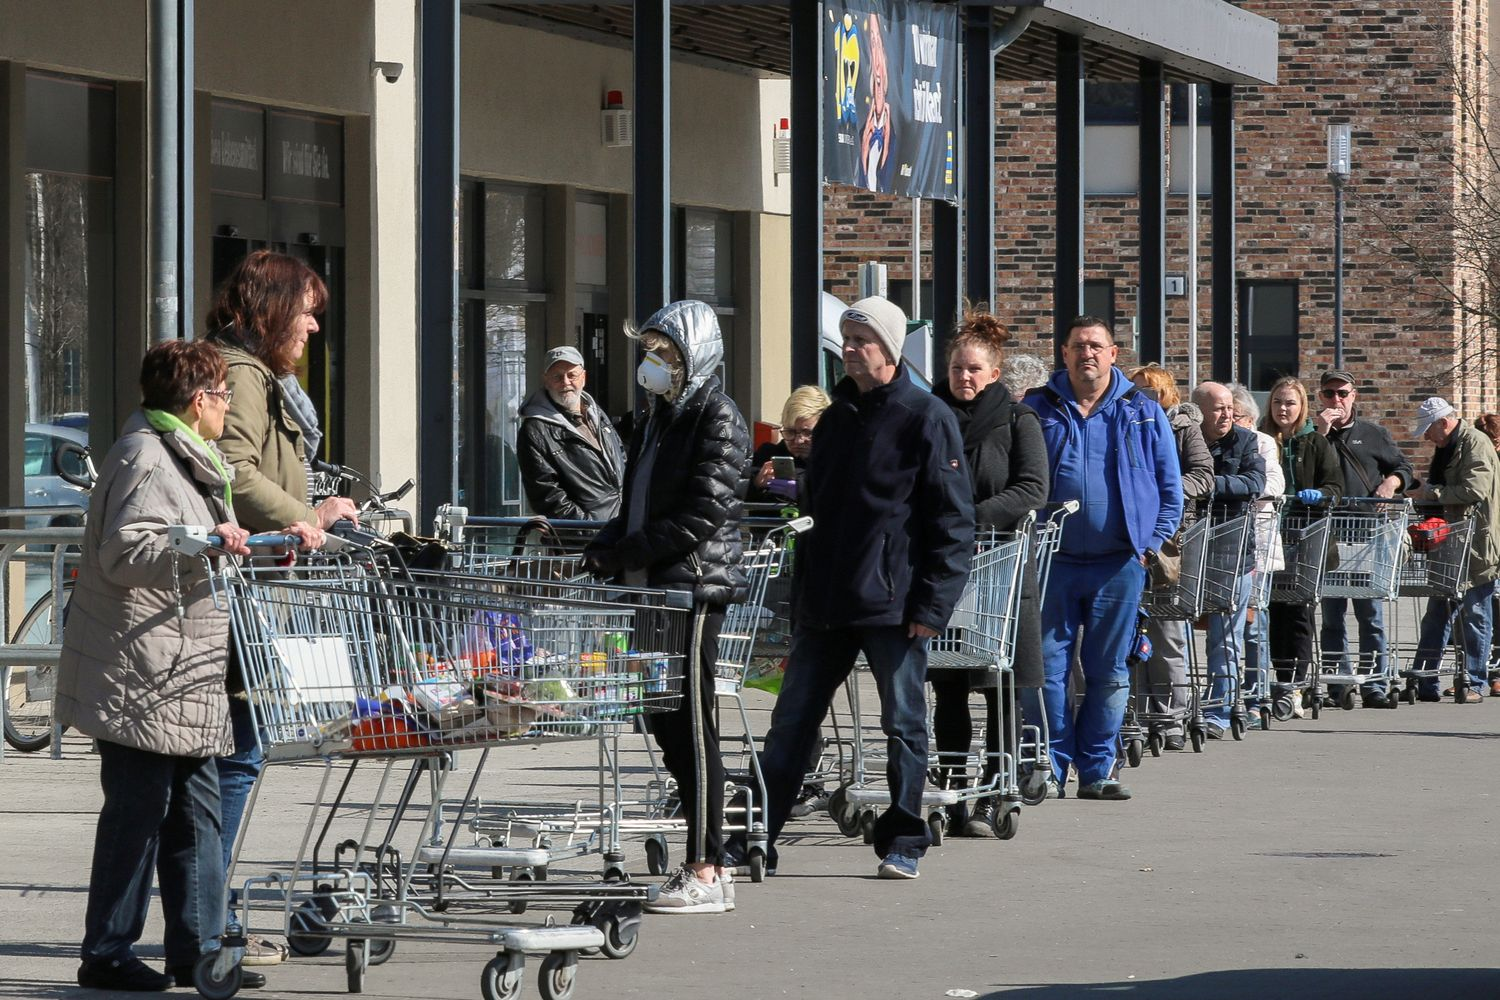 Shoppers leave as others wait in a queue to enter a supermarket in Schulzendorf near Berlin, during the coronavirus disease outbreak, in Germany, in March. (Reuters photo)